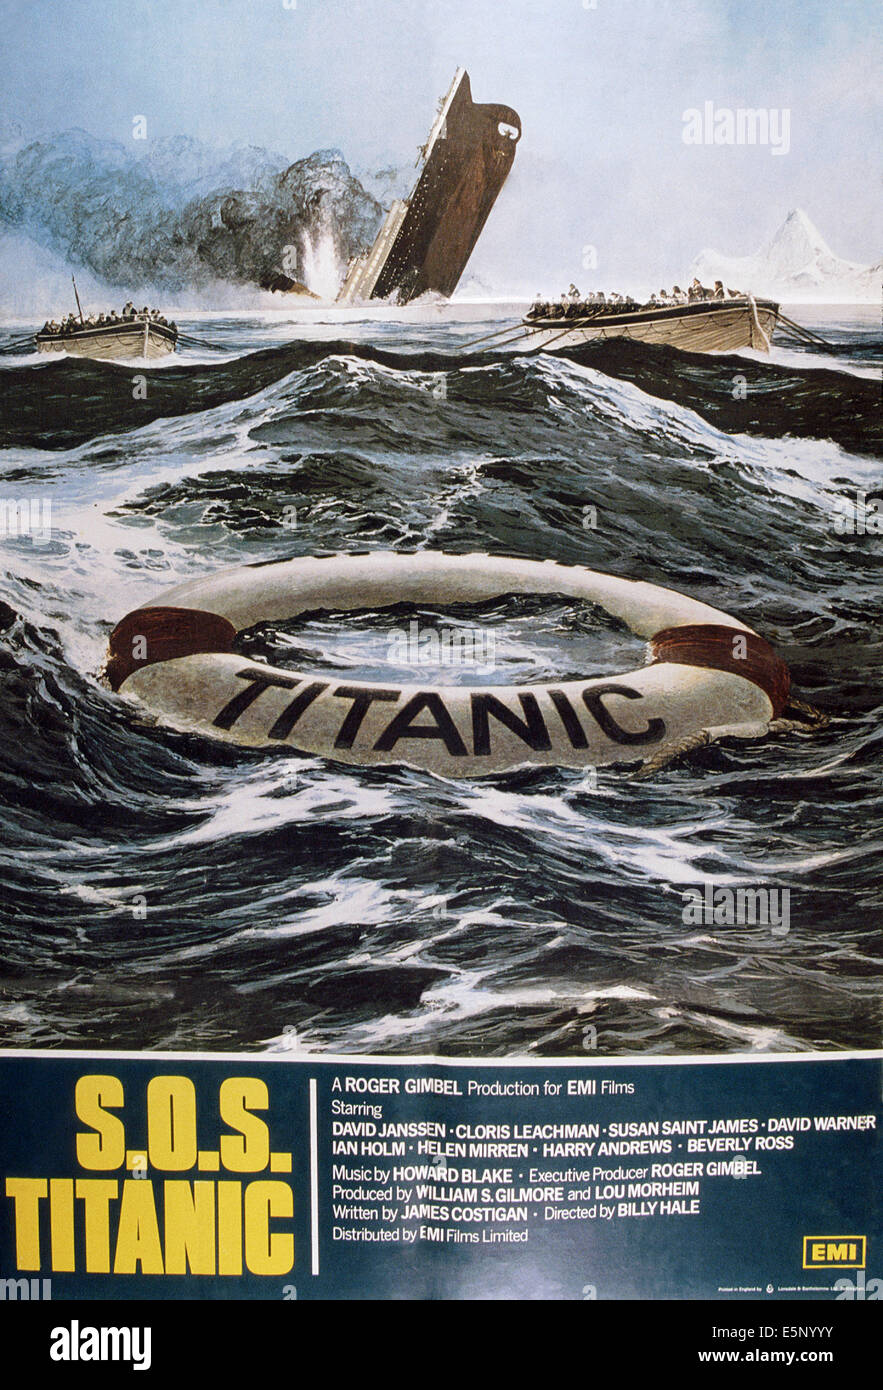 S.O.S. TITANIC, britische Plakat, 1979, © ABC/Courtesy Everett Collection Stockbild